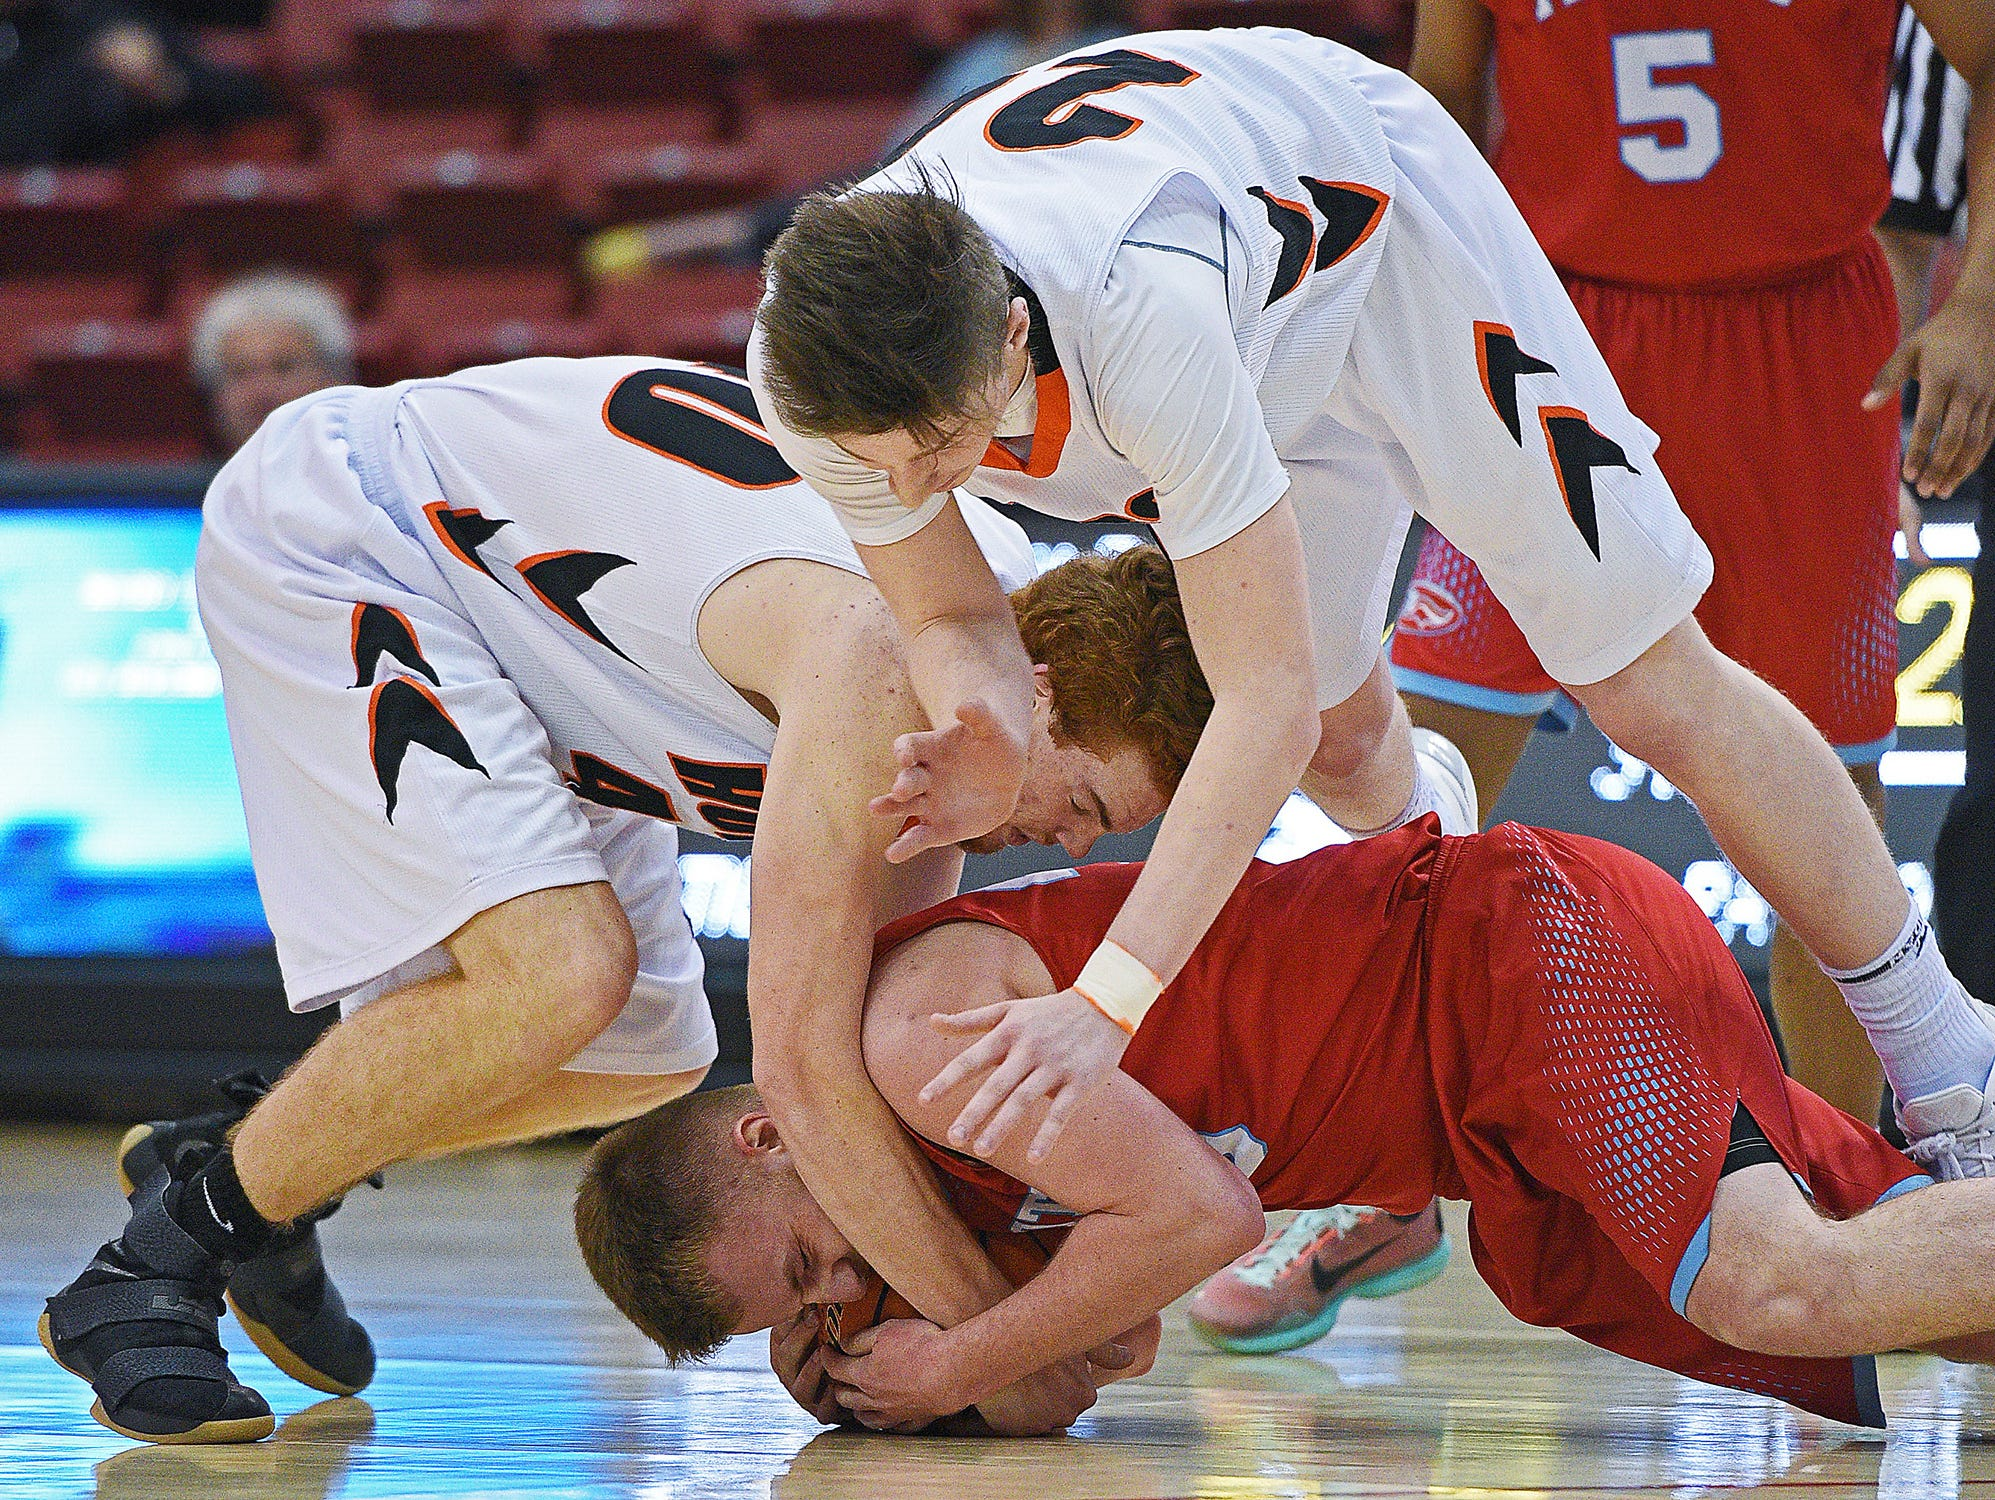 Lincoln's Andrew Tverberg (43) and Huron's Tye Evers (40) and Kobe Busch (24) struggle for the ball during a 2017 SDHSAA Class AA State Boys Basketball quarterfinal game Thursday, March 16, 2017, at Rushmore Plaza Civic Center in Rapid City.